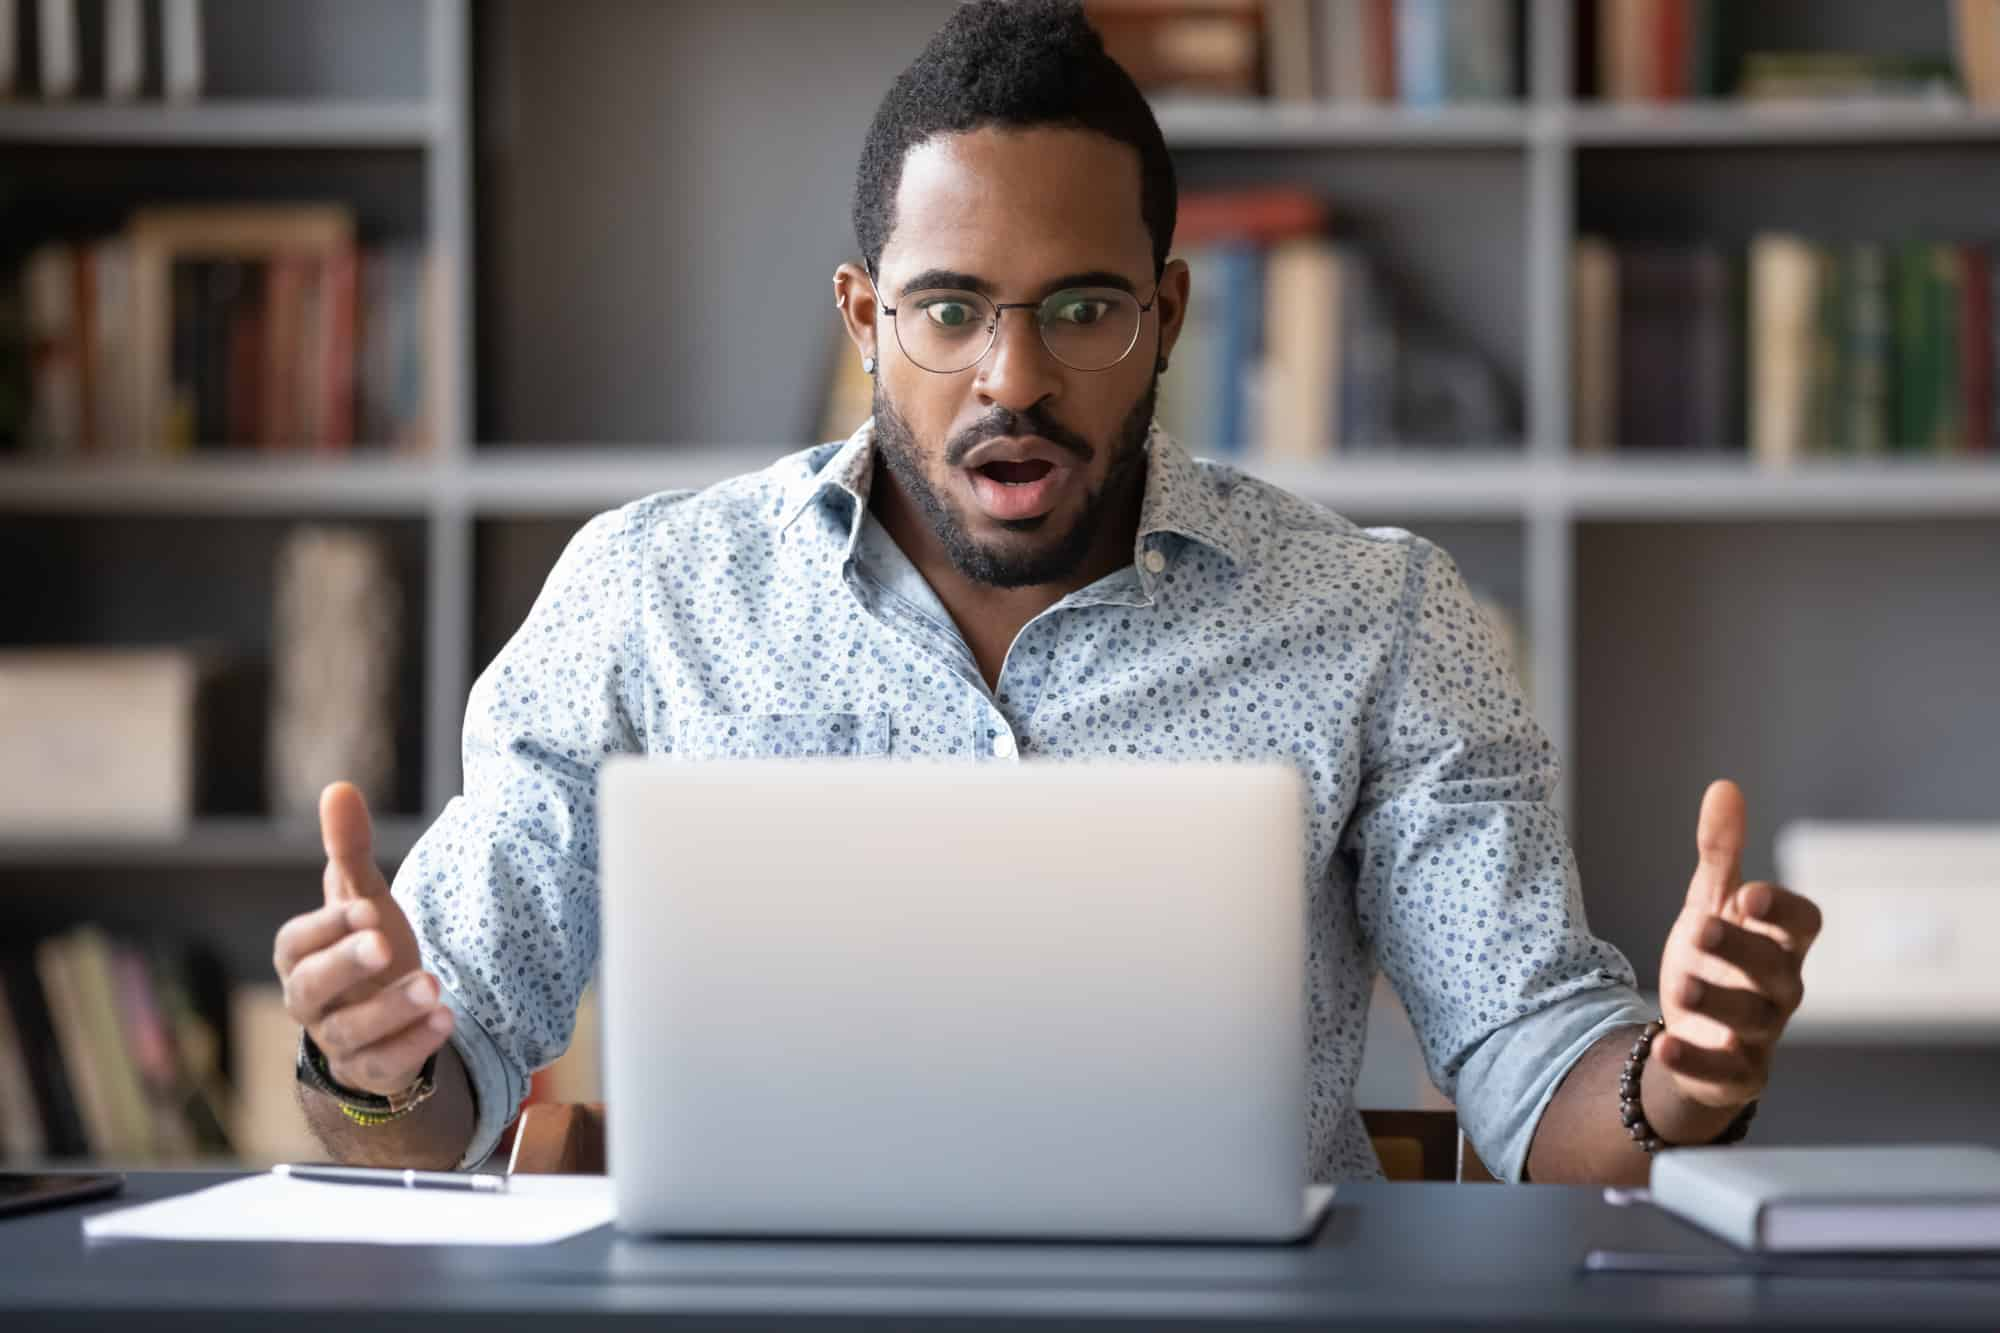 Black male surprised trying to figure out Instacart prices for grocery delivery service on a laptop